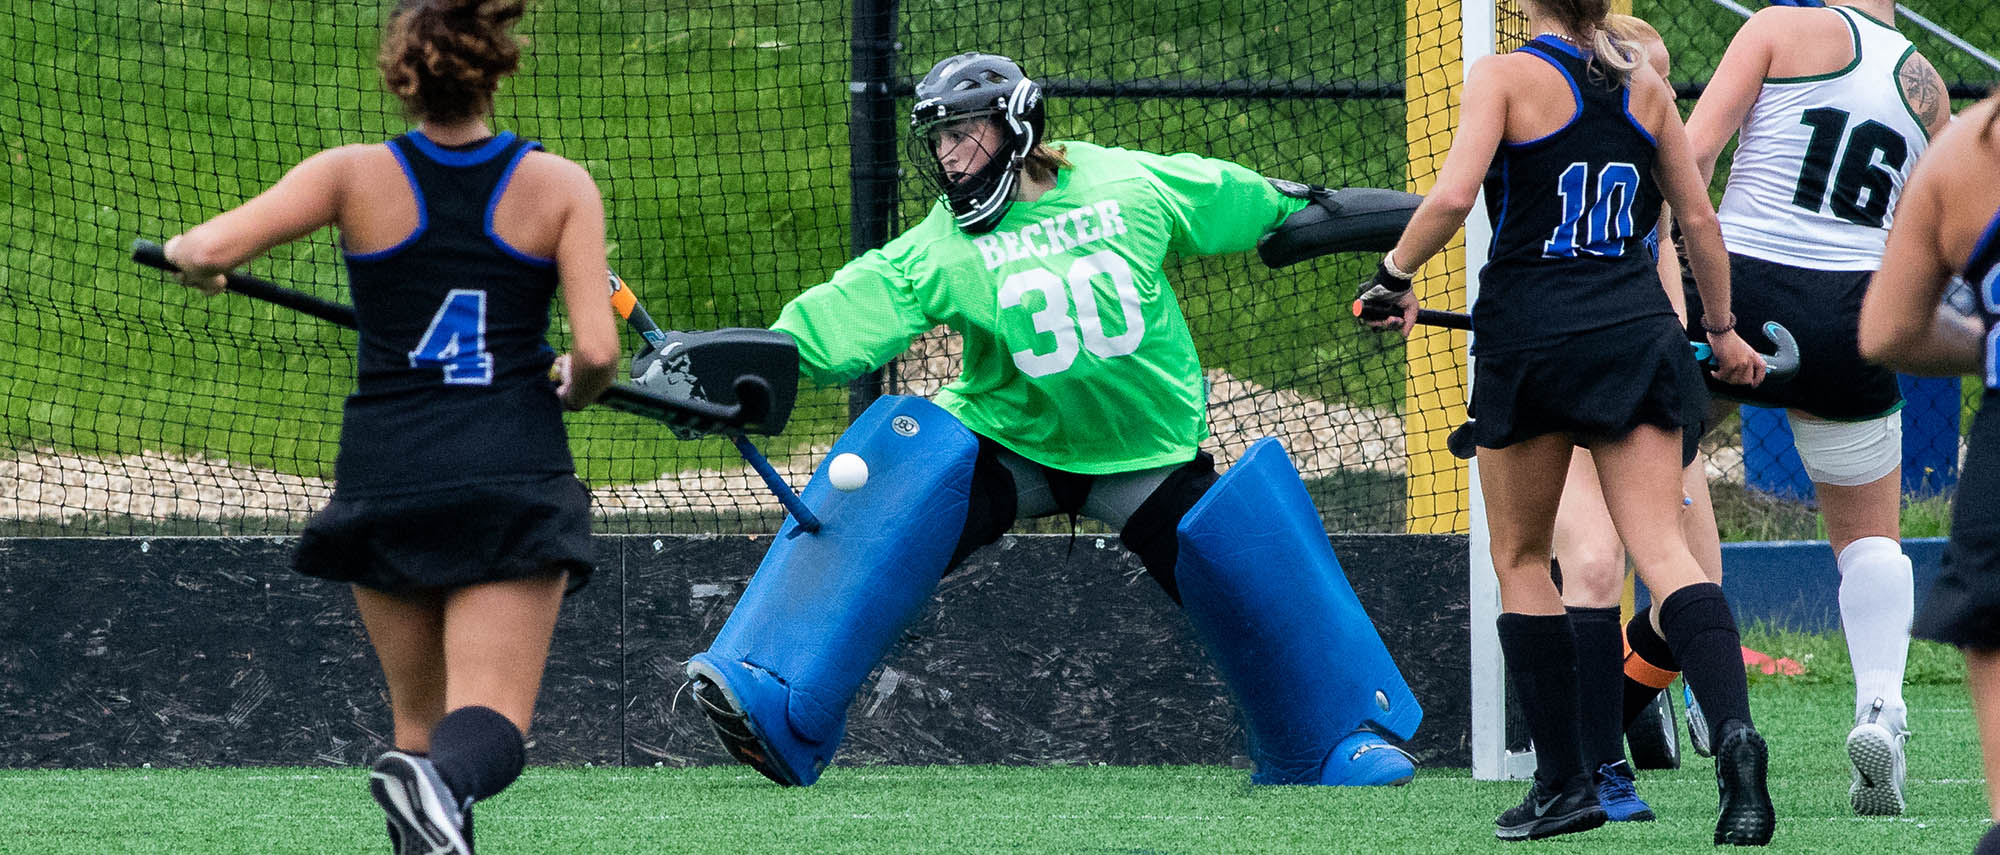 Victoria Pilpel of the field hockey team making a save in net